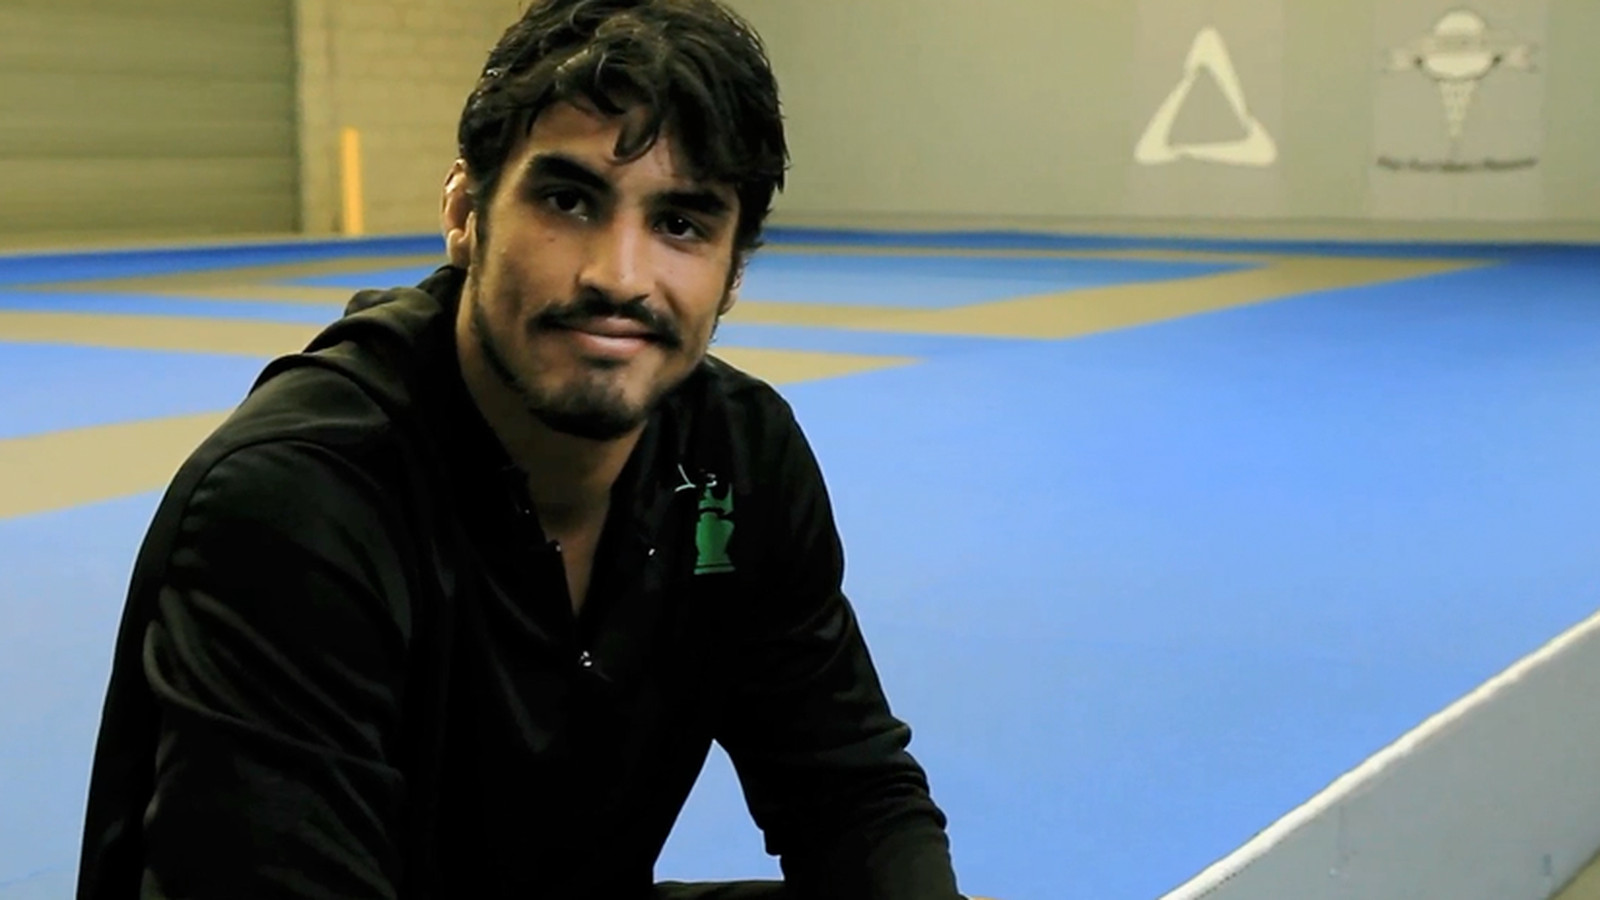 Kron Gracie vs. Asen Yamamoto added to Rizin card - Bloody ...